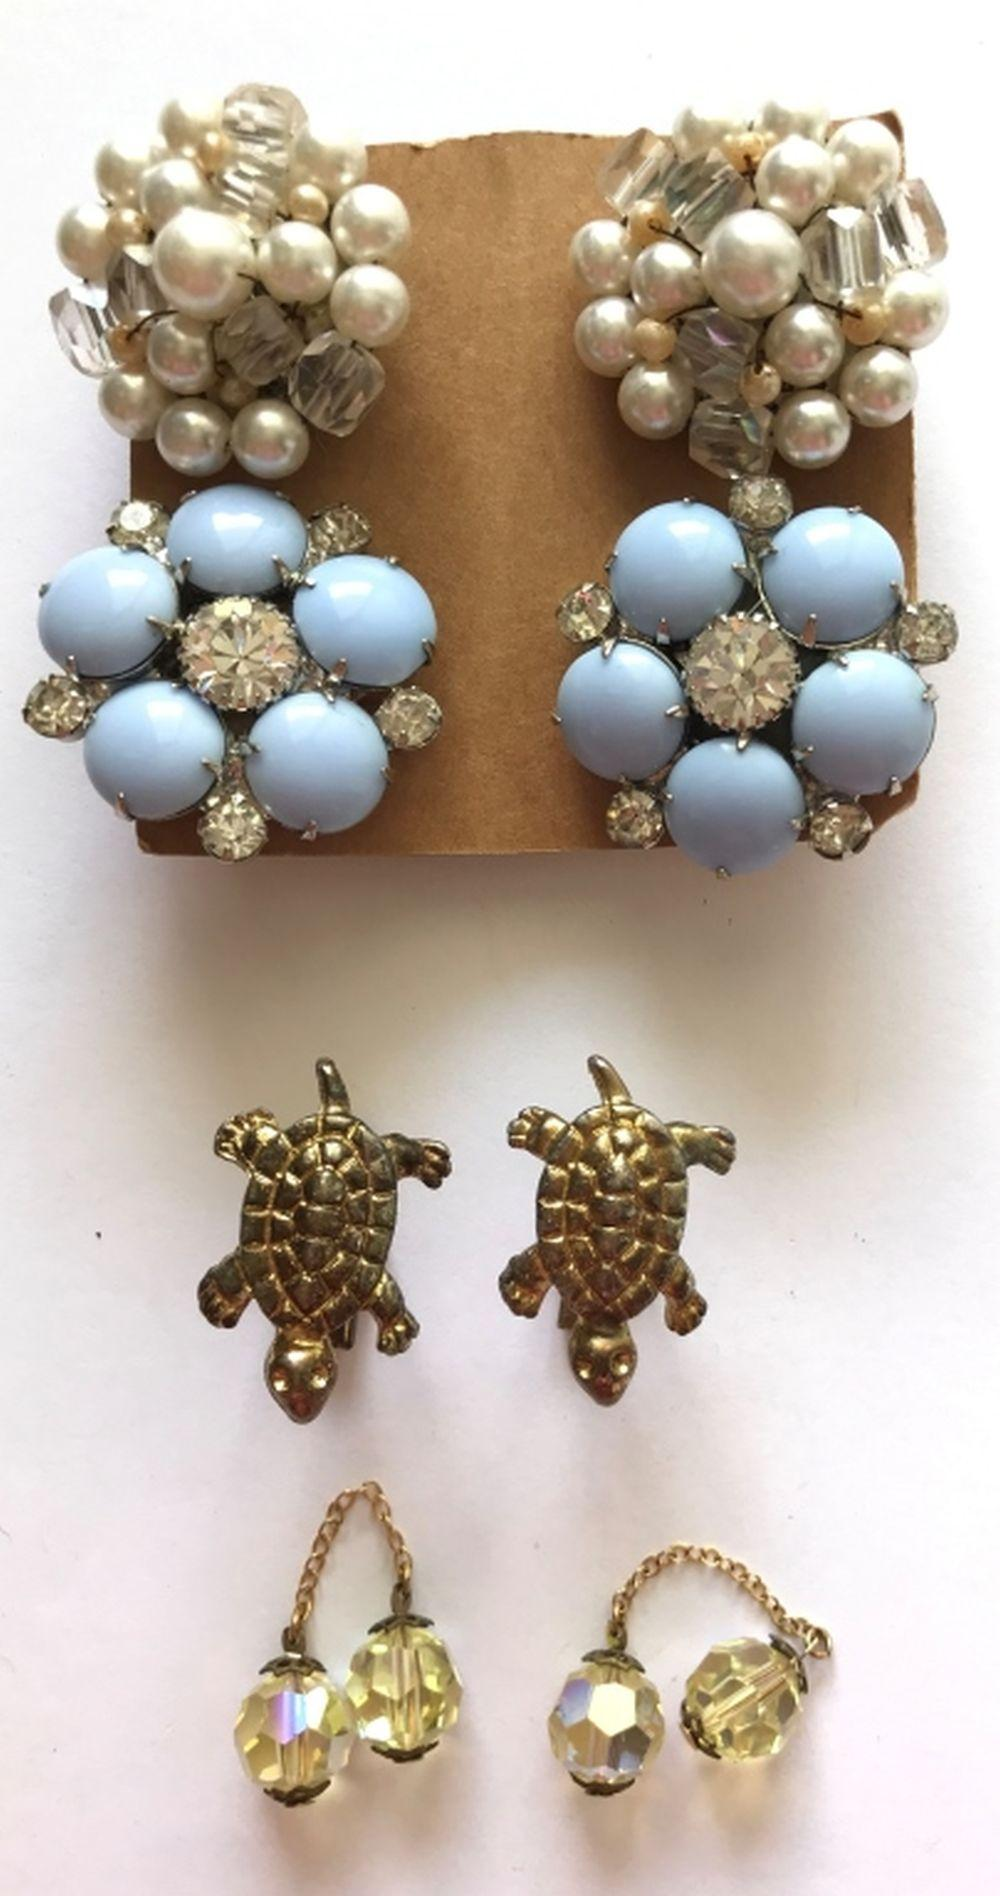 2 PAIRS CLUSTER EARRINGS + CUFF LINKS